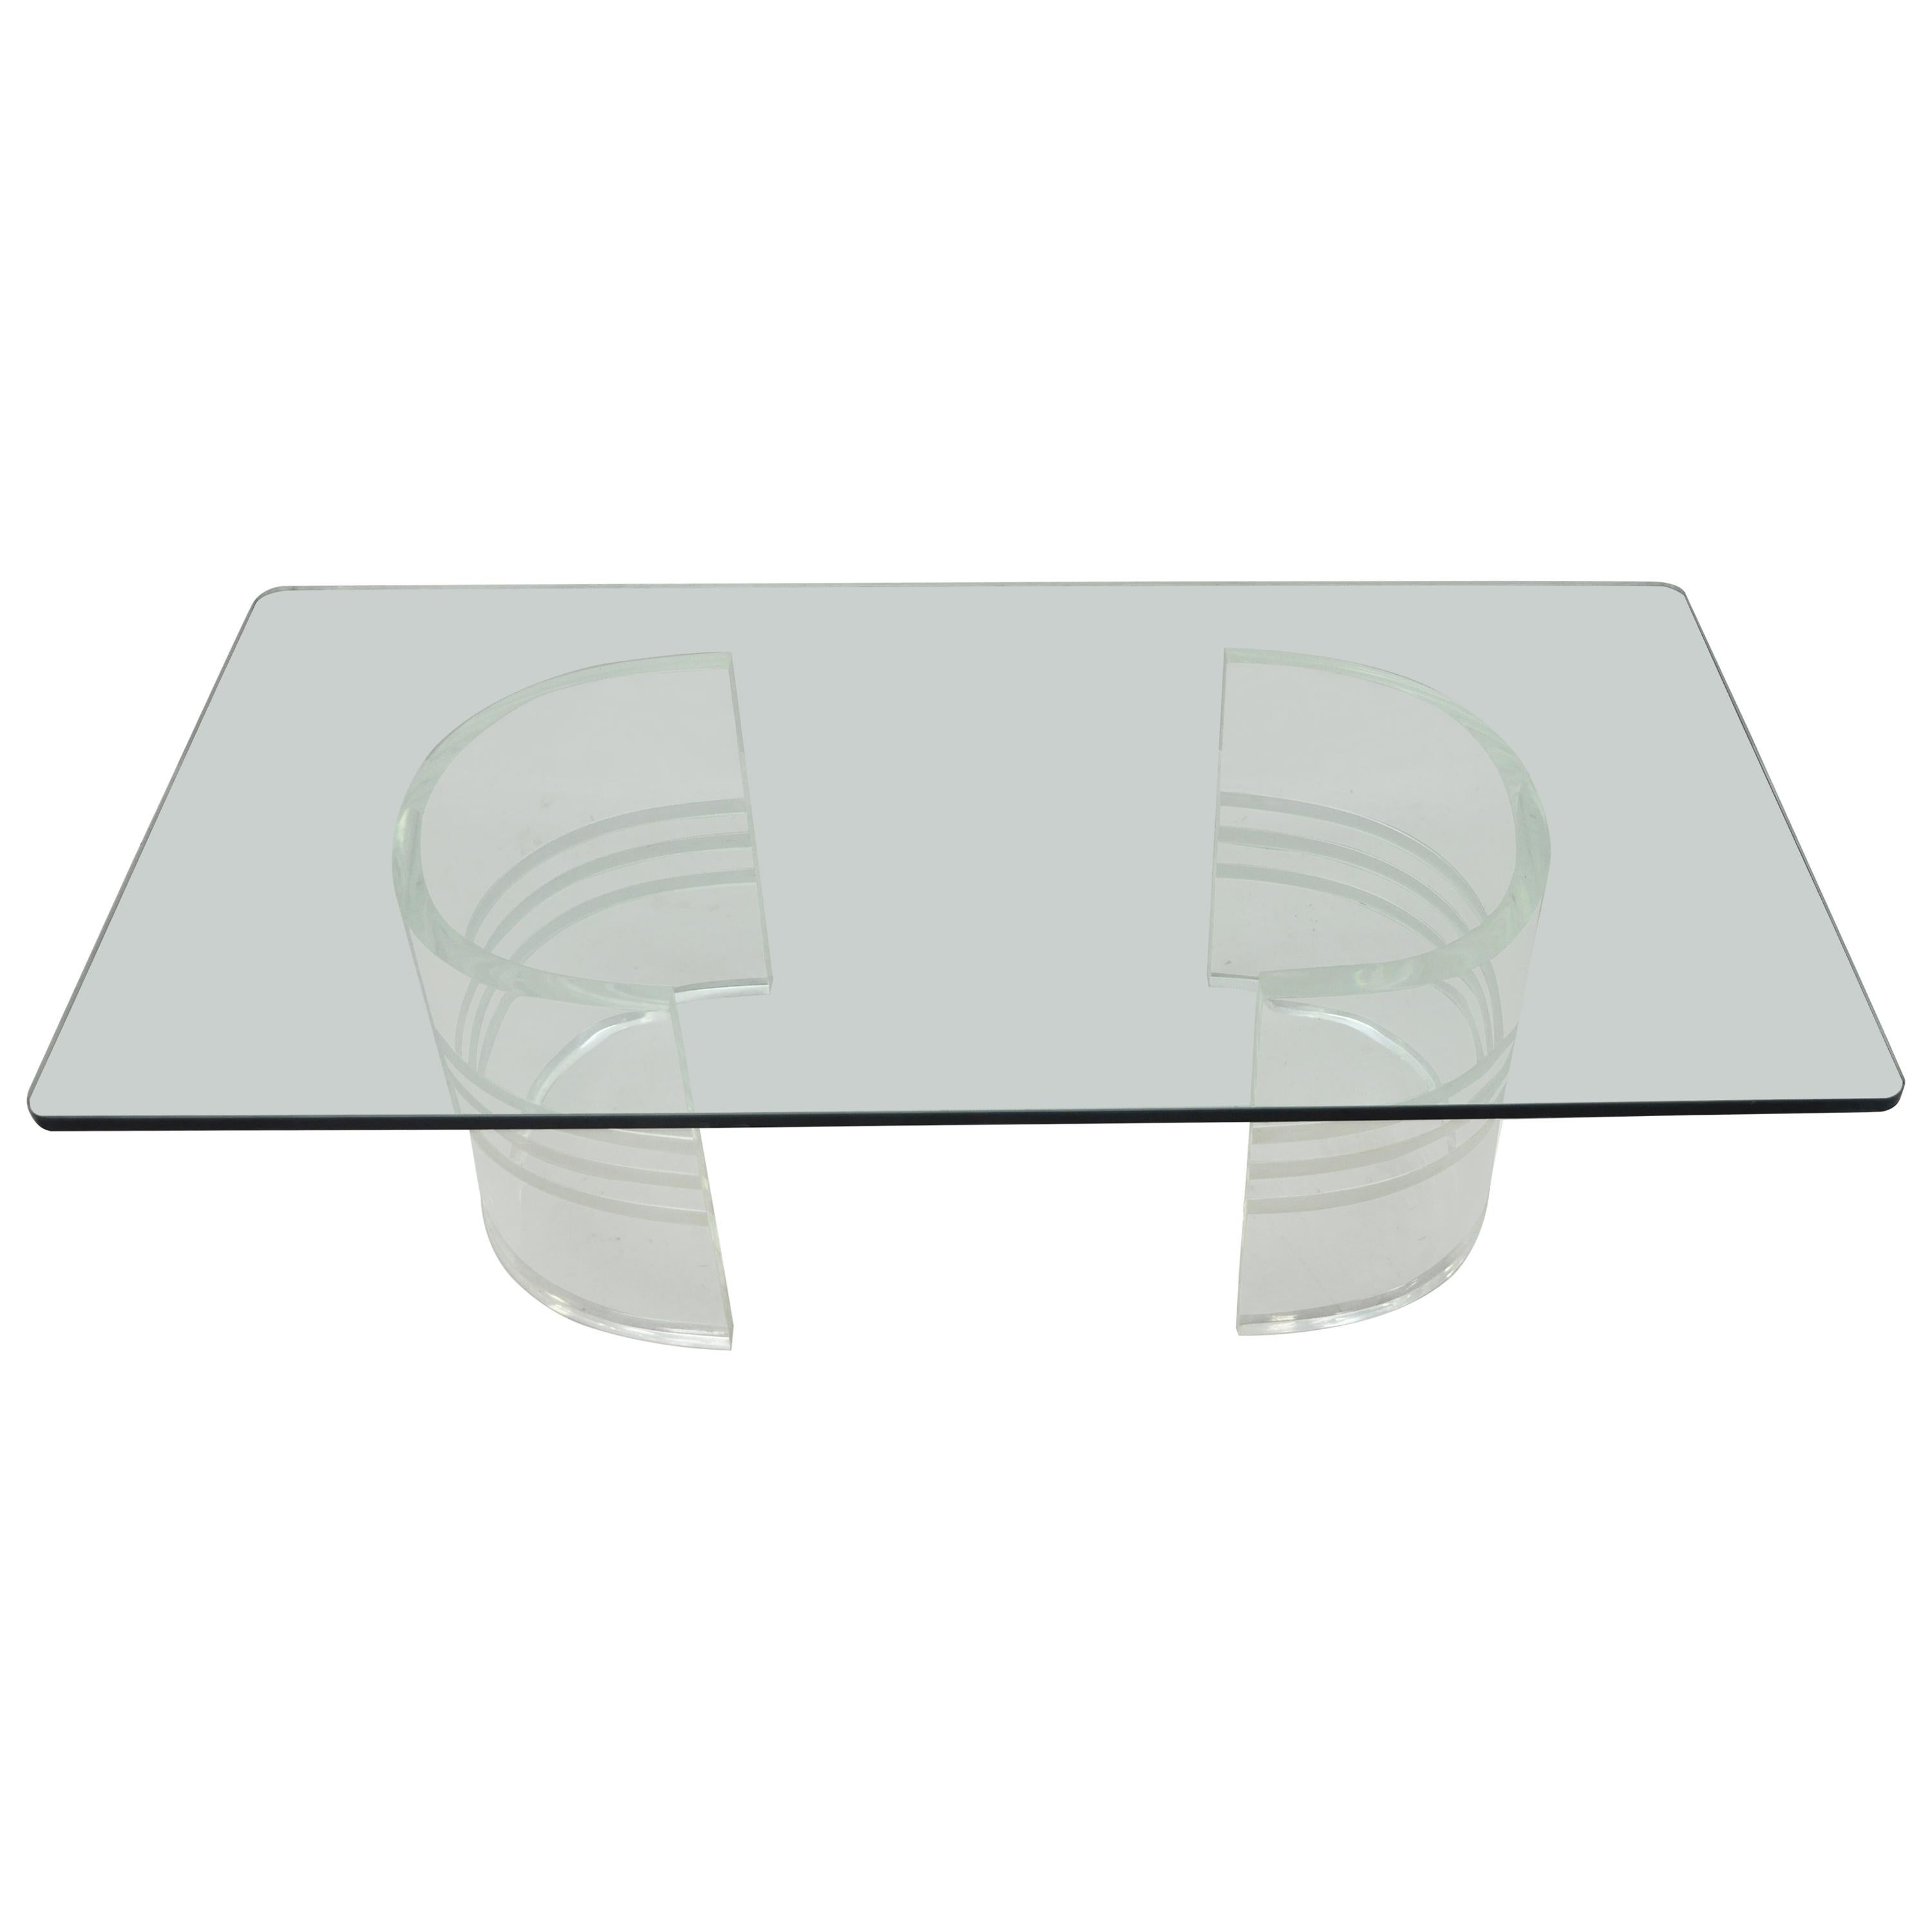 Midcentury Double Pedestal Curved Lucite Base Rectangular Glass Coffee Table